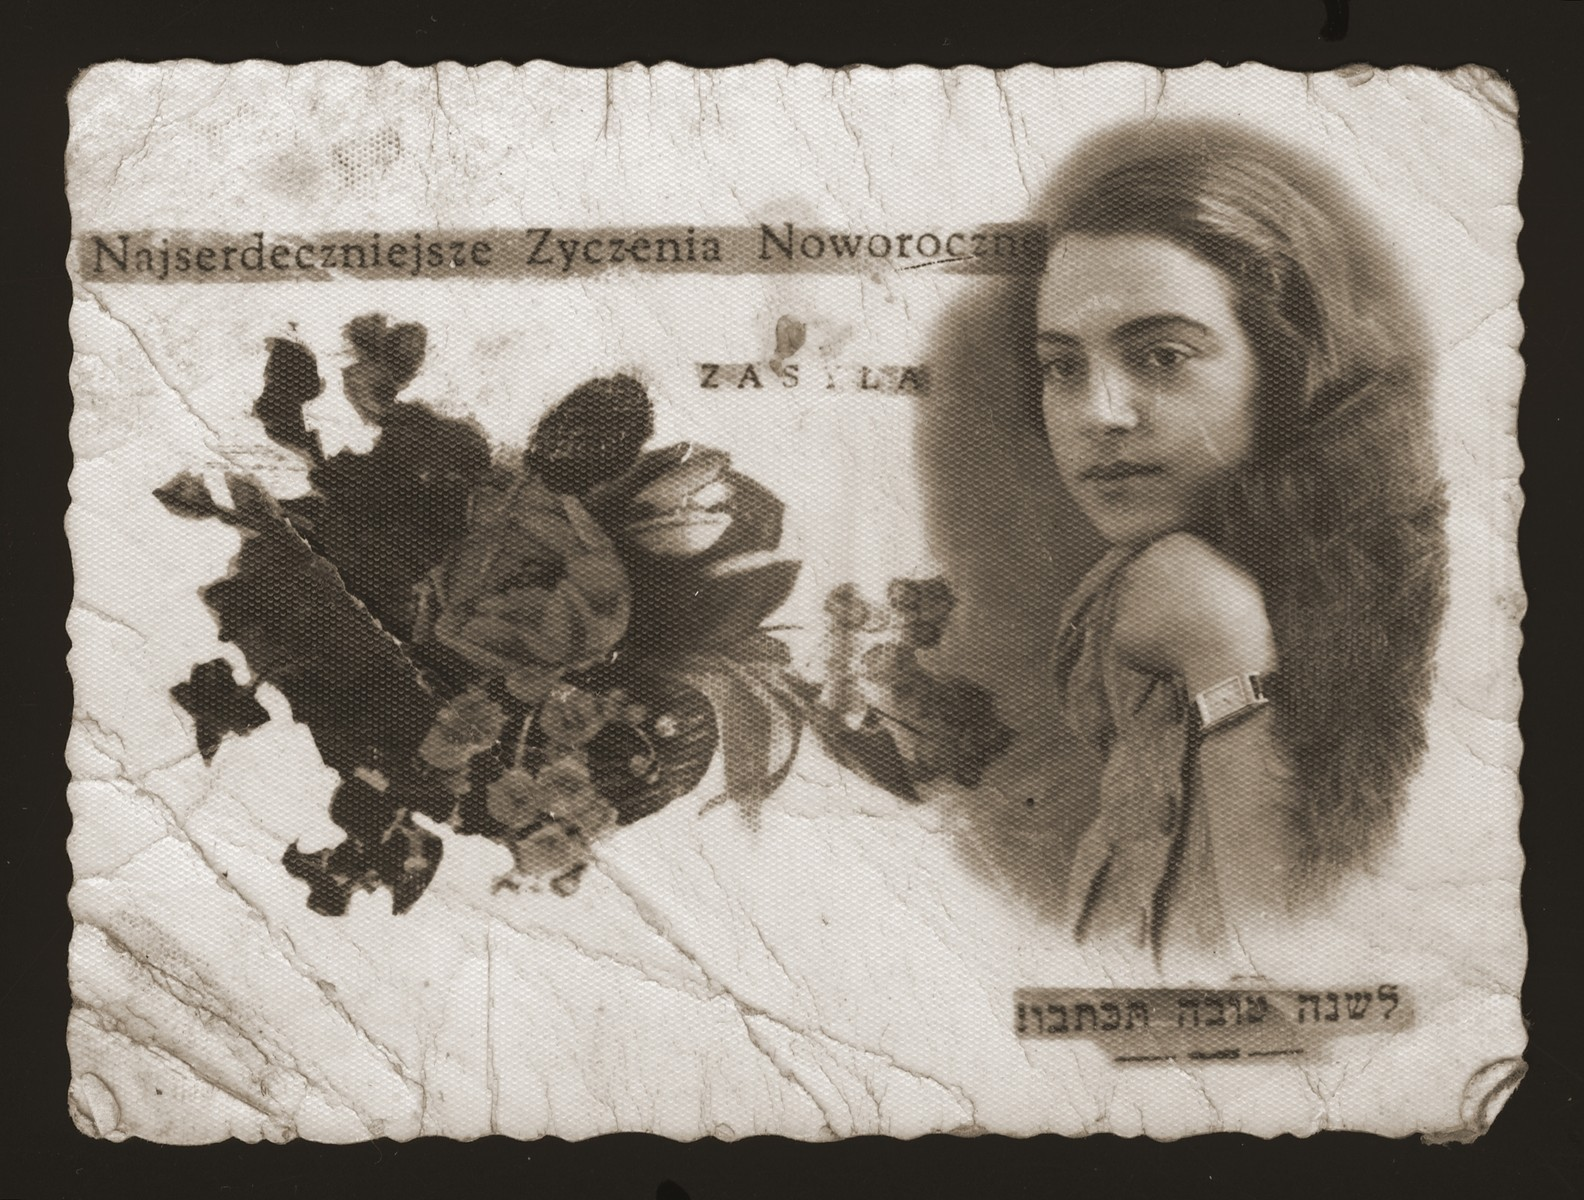 A personalized Jewish New Year's card in Polish and Hebrew with a photograph of Estera Ajzen.